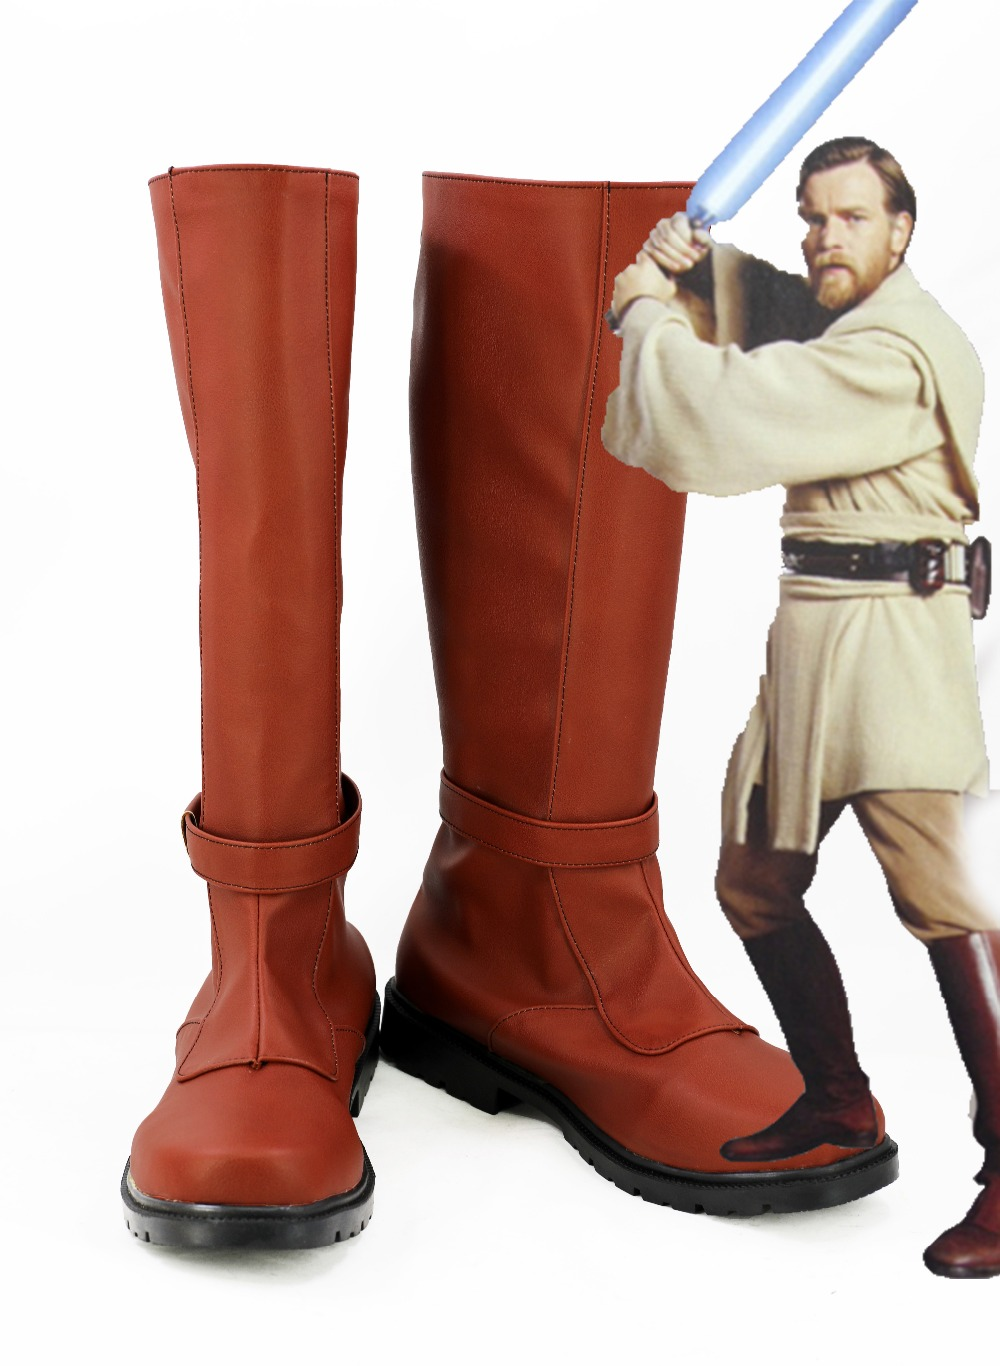 Star Wars Obi Wan Kenobi Jedi Boots Cosplay Shoes Custom Made